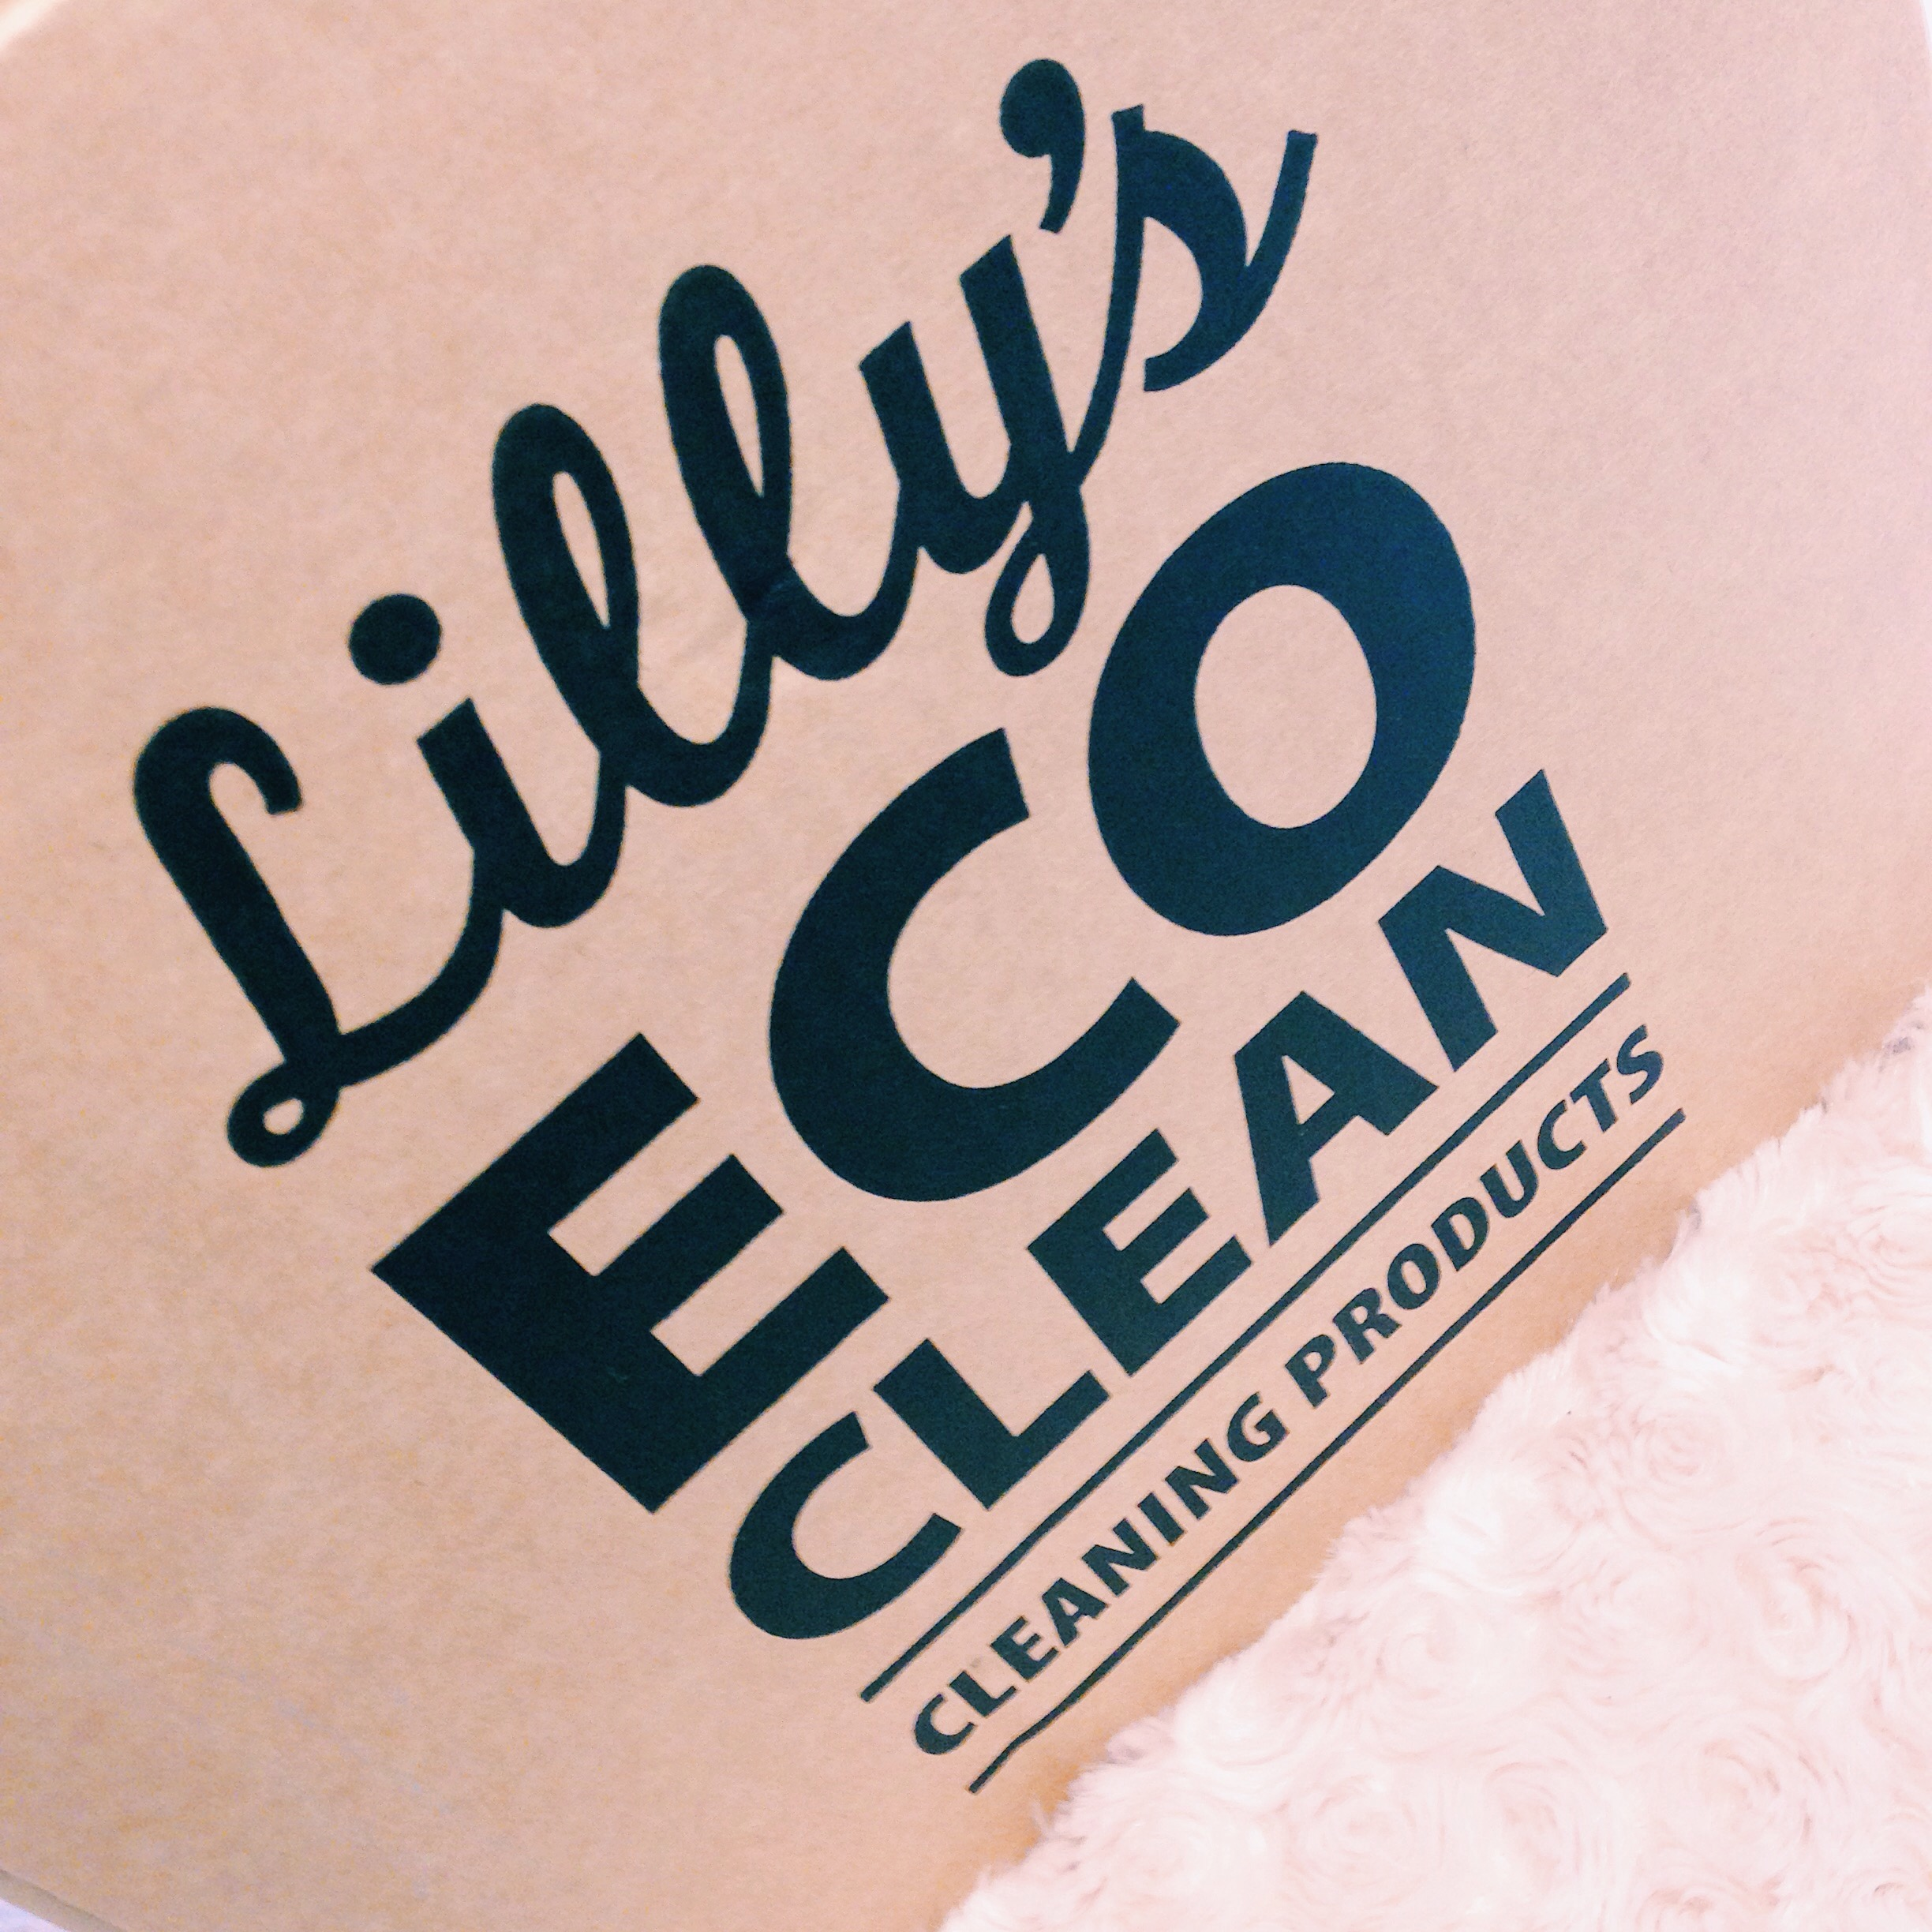 Städprodukter - Lilly's Eco Clean